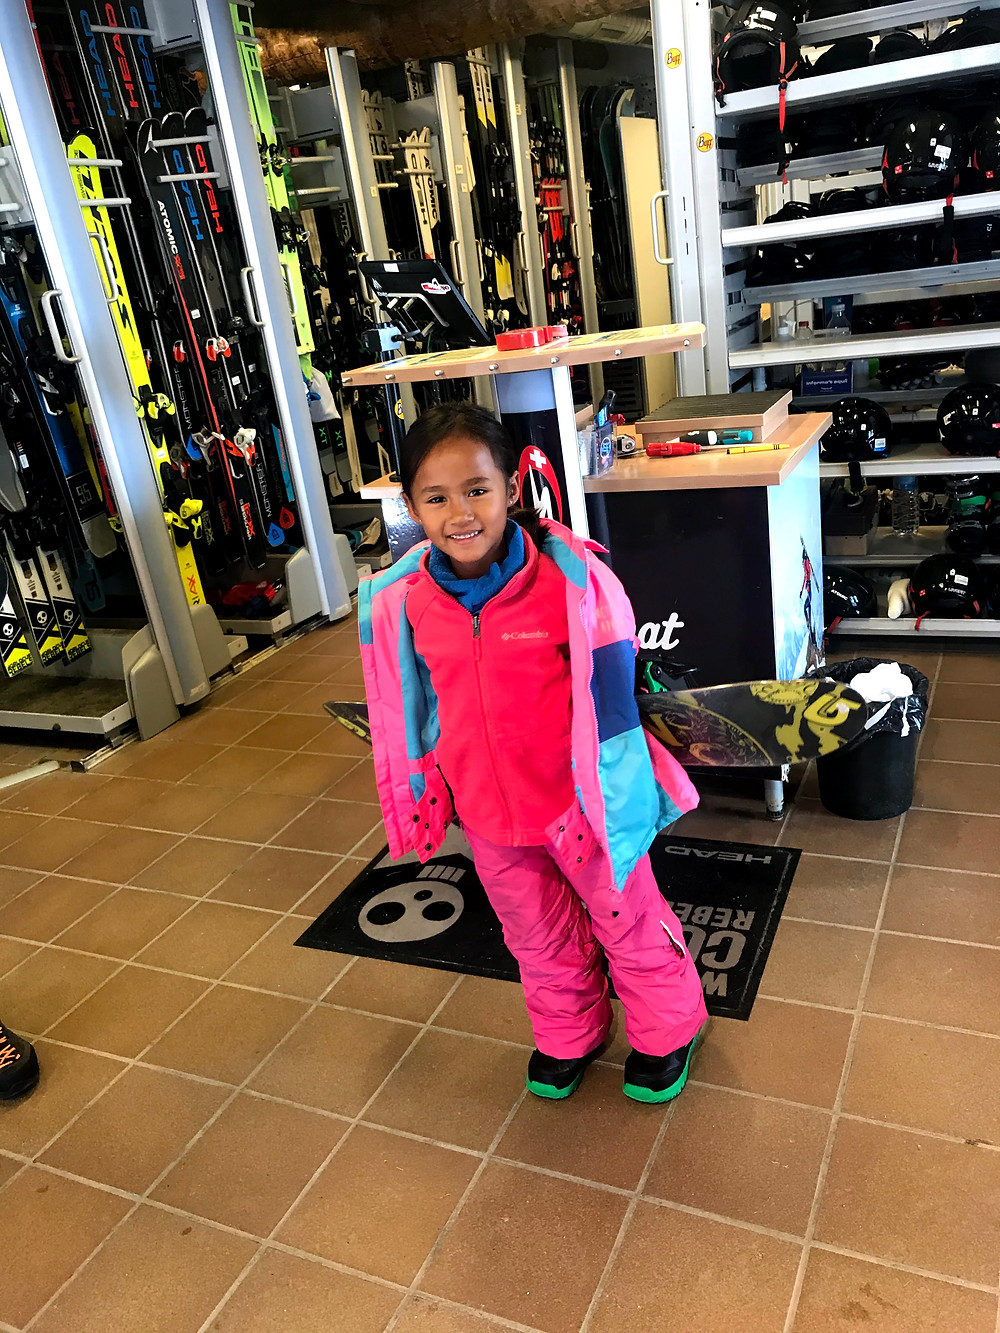 Hi I am Zazi, I am getting my board and boots to go snowboarding for the first time.